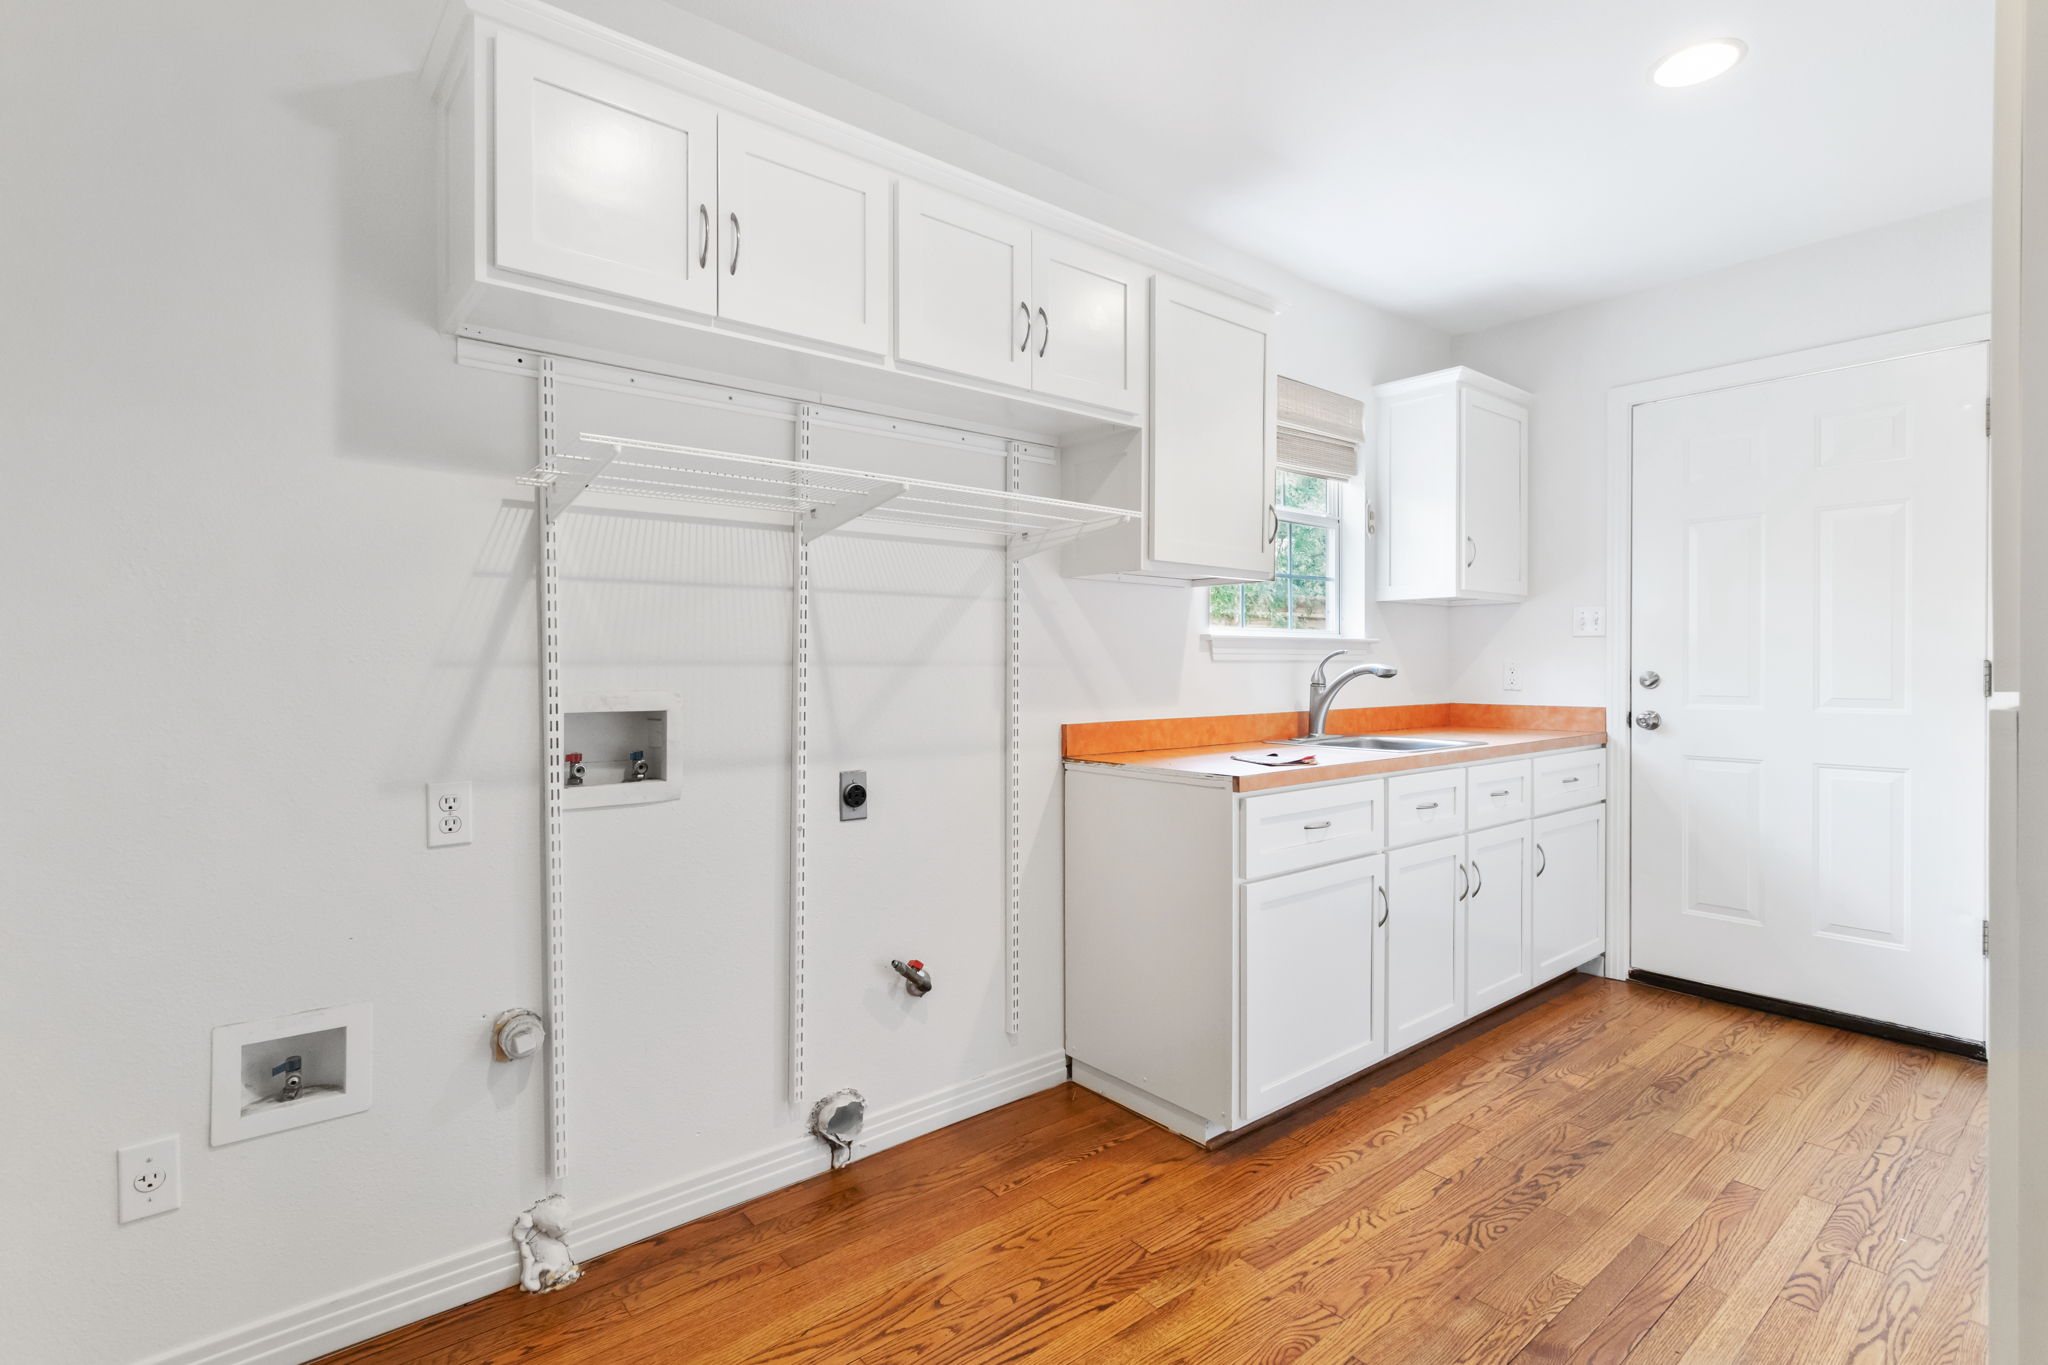 Exceptional indoor laundry room with built-in cabinets, sink, pantry and storage bench with hooks.